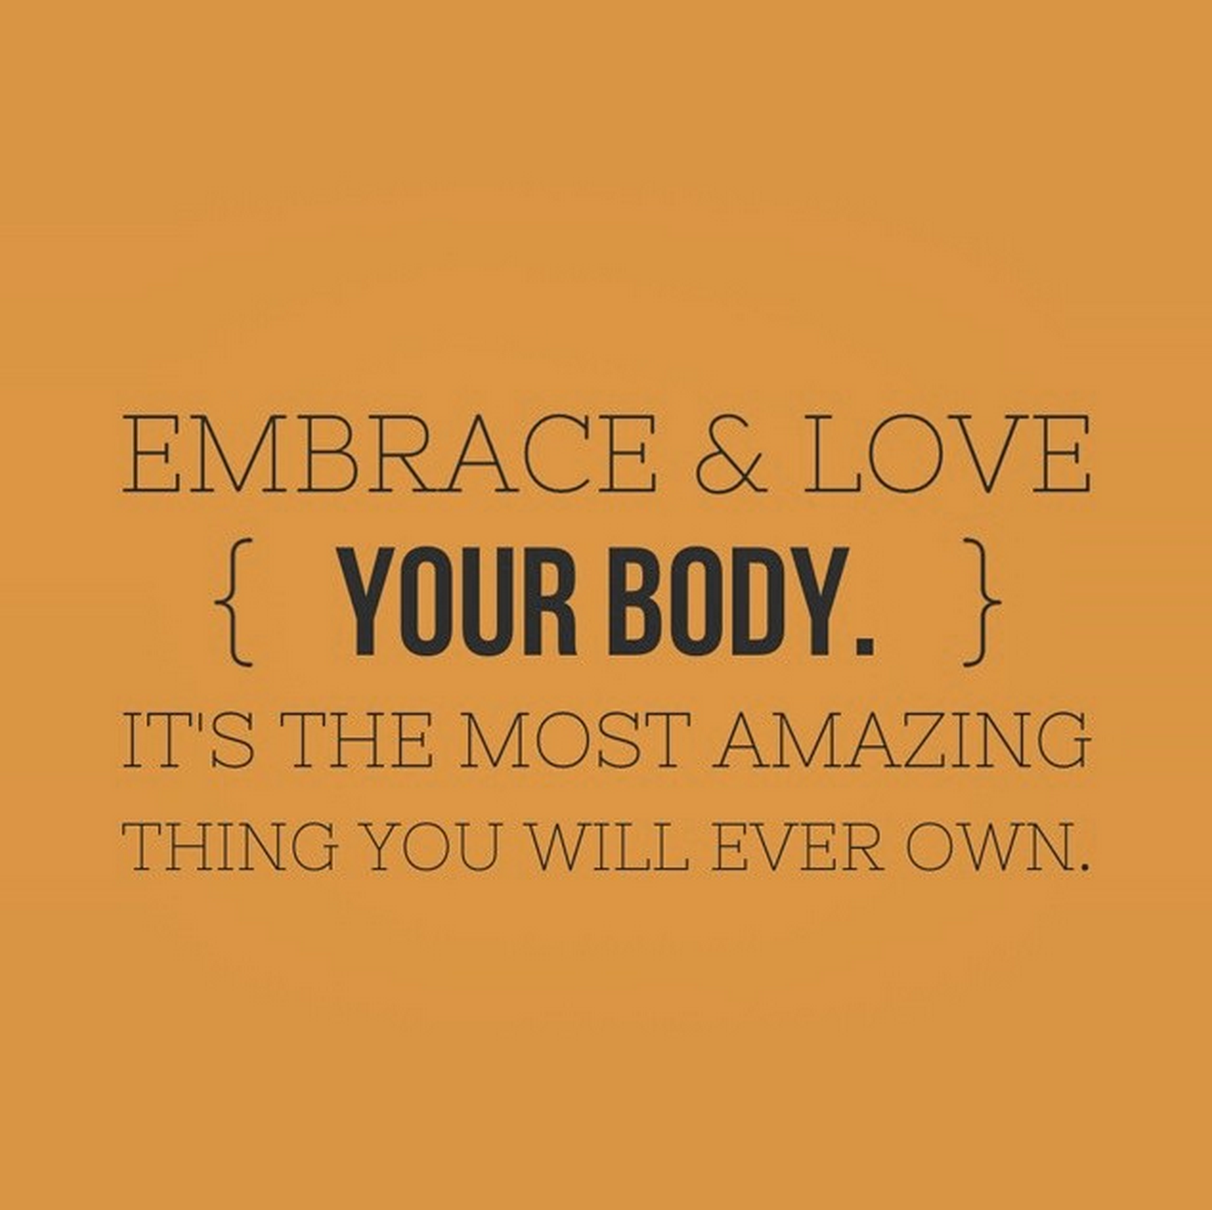 Embrace And Love Your Body Quotes Pilates Pilateslovers Cute